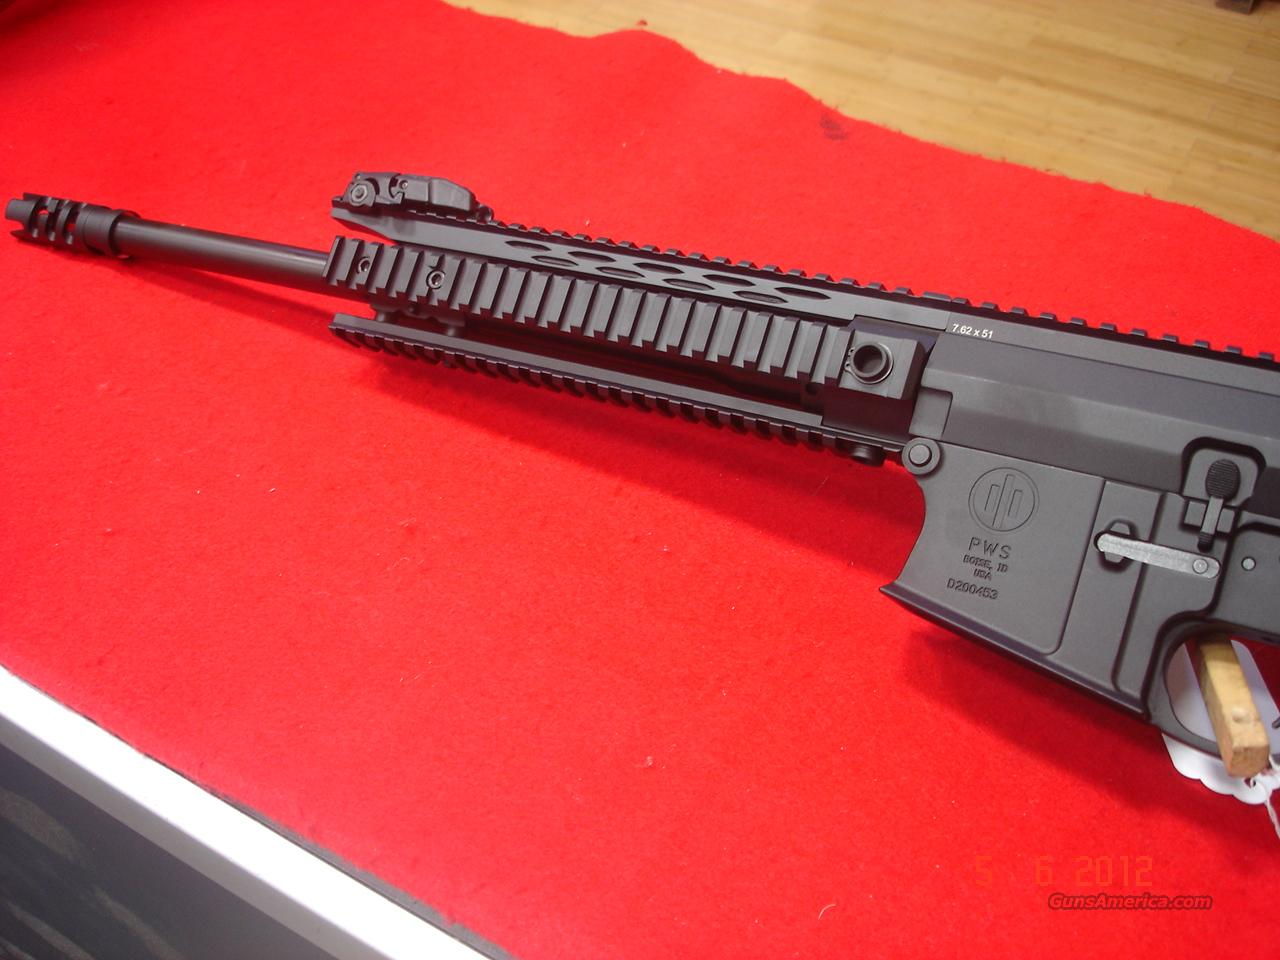 PWS MK216 .308 Win  Guns > Rifles > AR-15 Rifles - Small Manufacturers > Complete Rifle